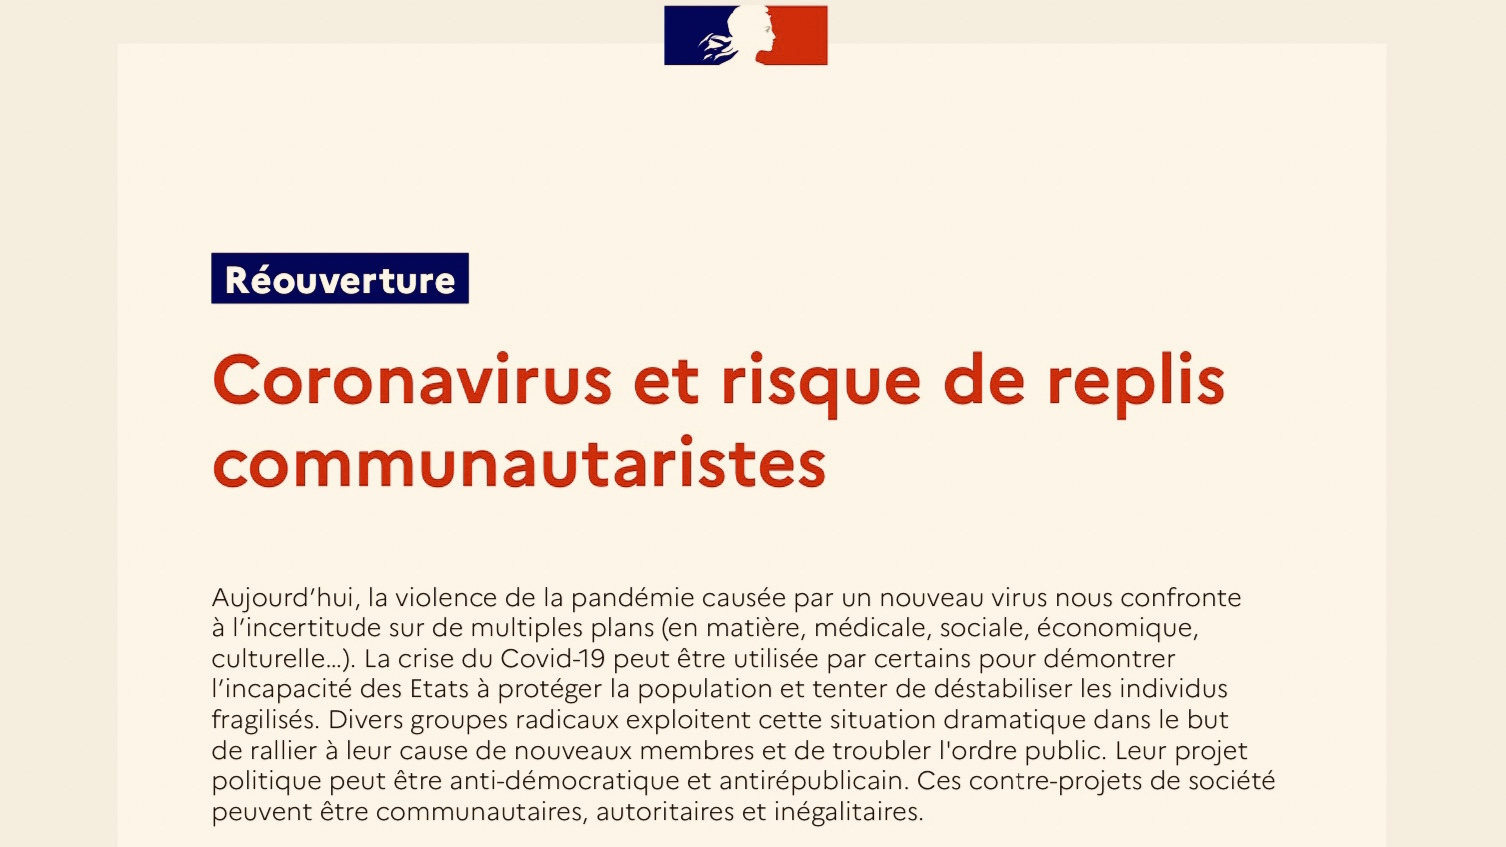 Communitarianism: Read the original document from the French Ministry of National Education